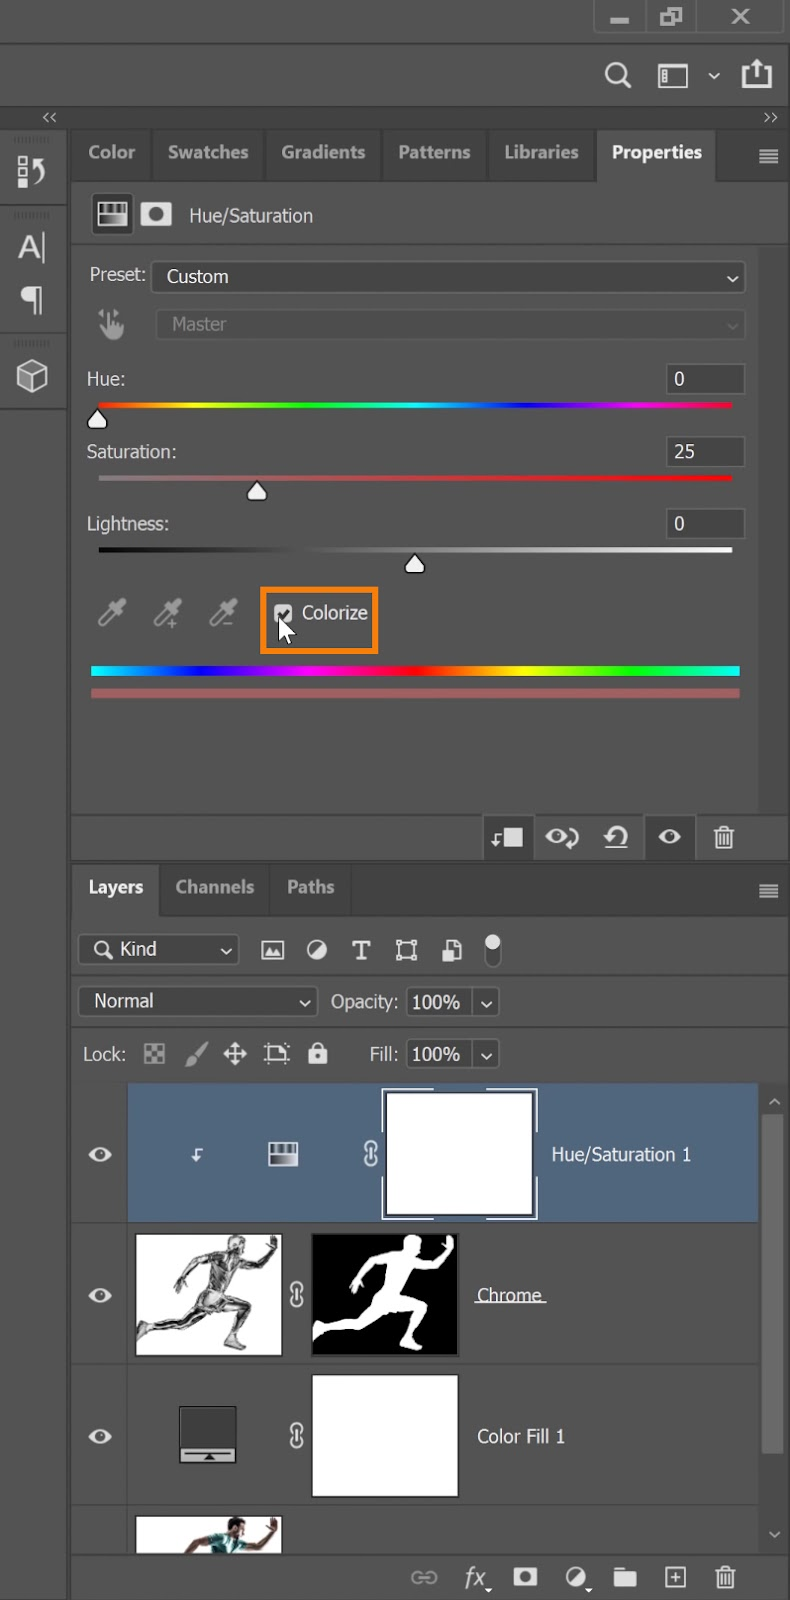 Check the box for Colorize to apply color to the Hue/Saturation layer